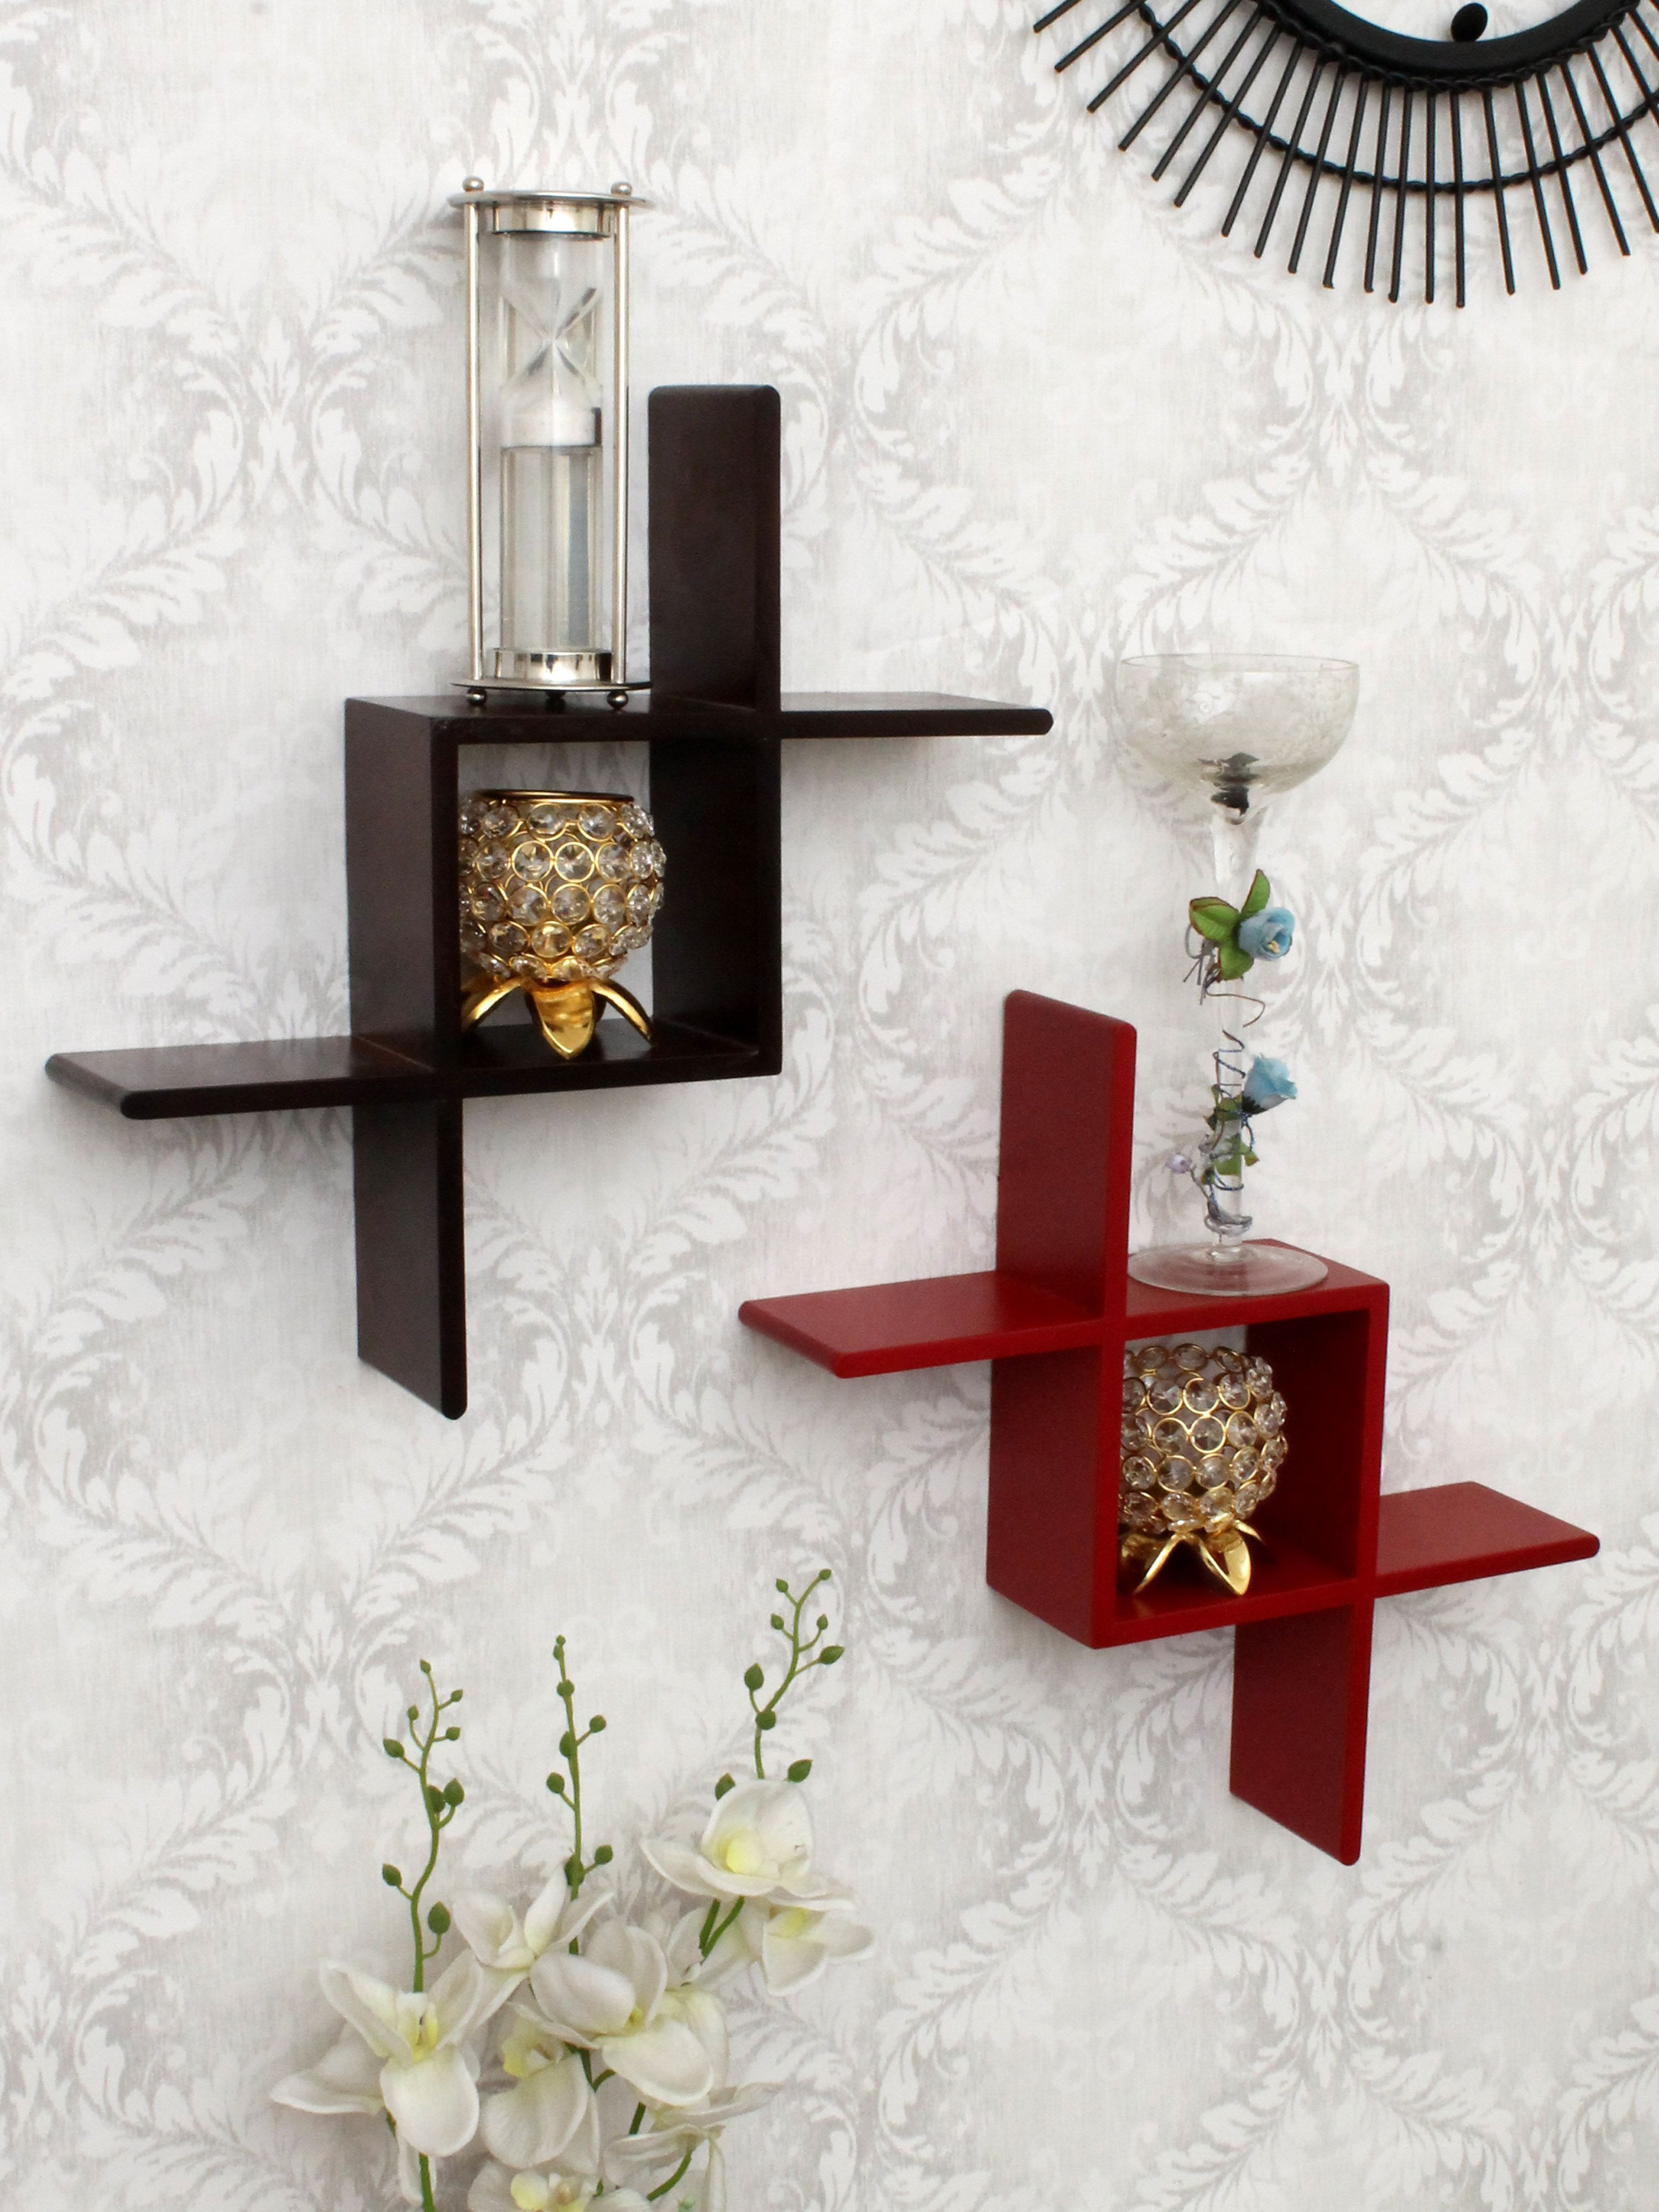 Home Sparkle MDF set of 2 zig zag wall shelf For Wall Décor -Suitable For Living Room/Bed Room (Designed By Craftsman)